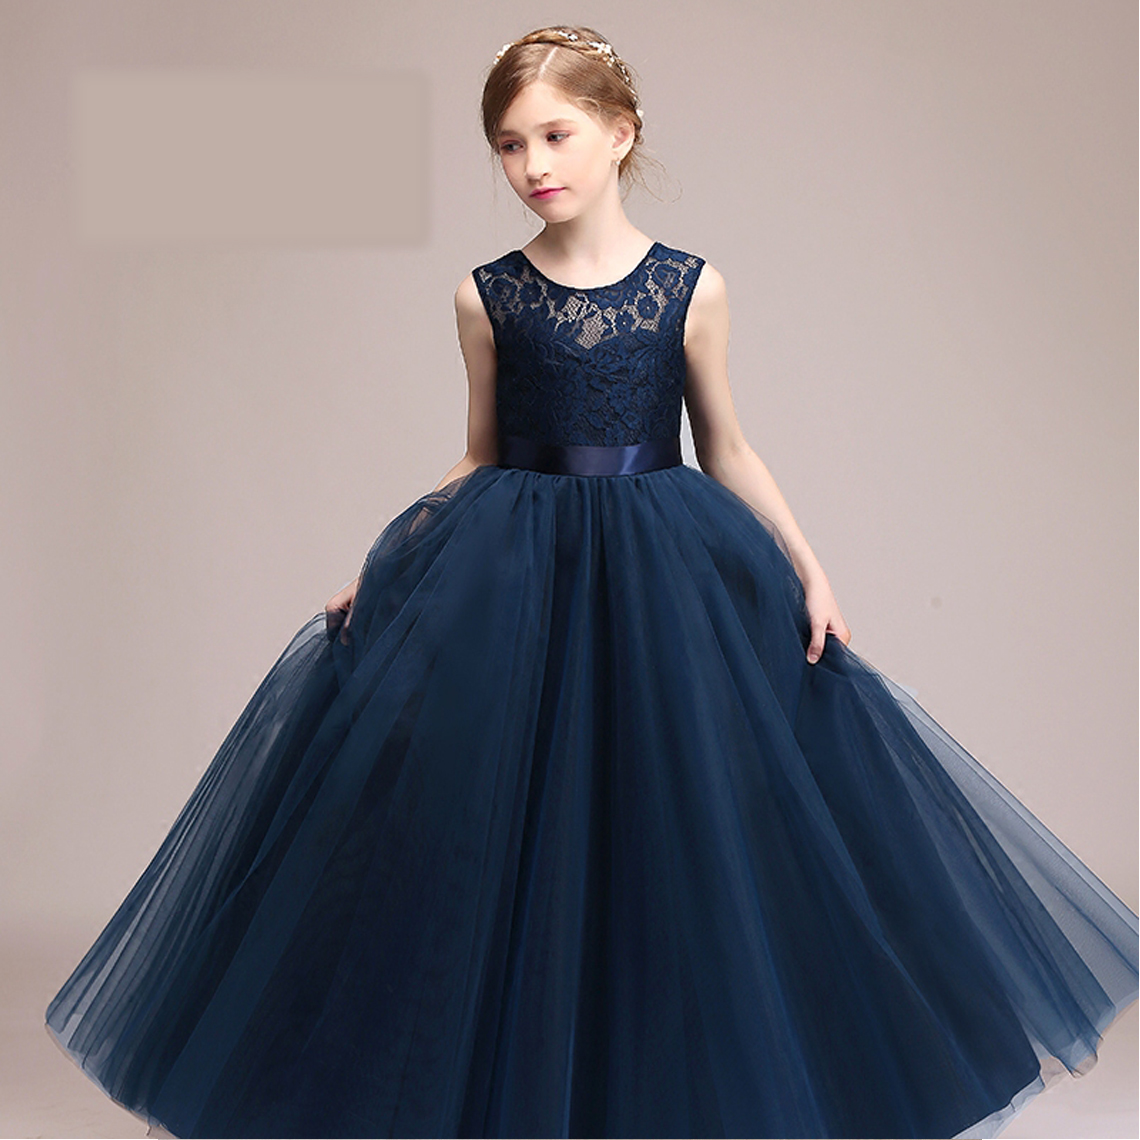 Luxury Long Lace Pierced Embroidery Flower Girls Dress For Wedding Prom Party New Style 2017 Prom Party Princess Girls Dress P61 lace insert maxi party prom dress